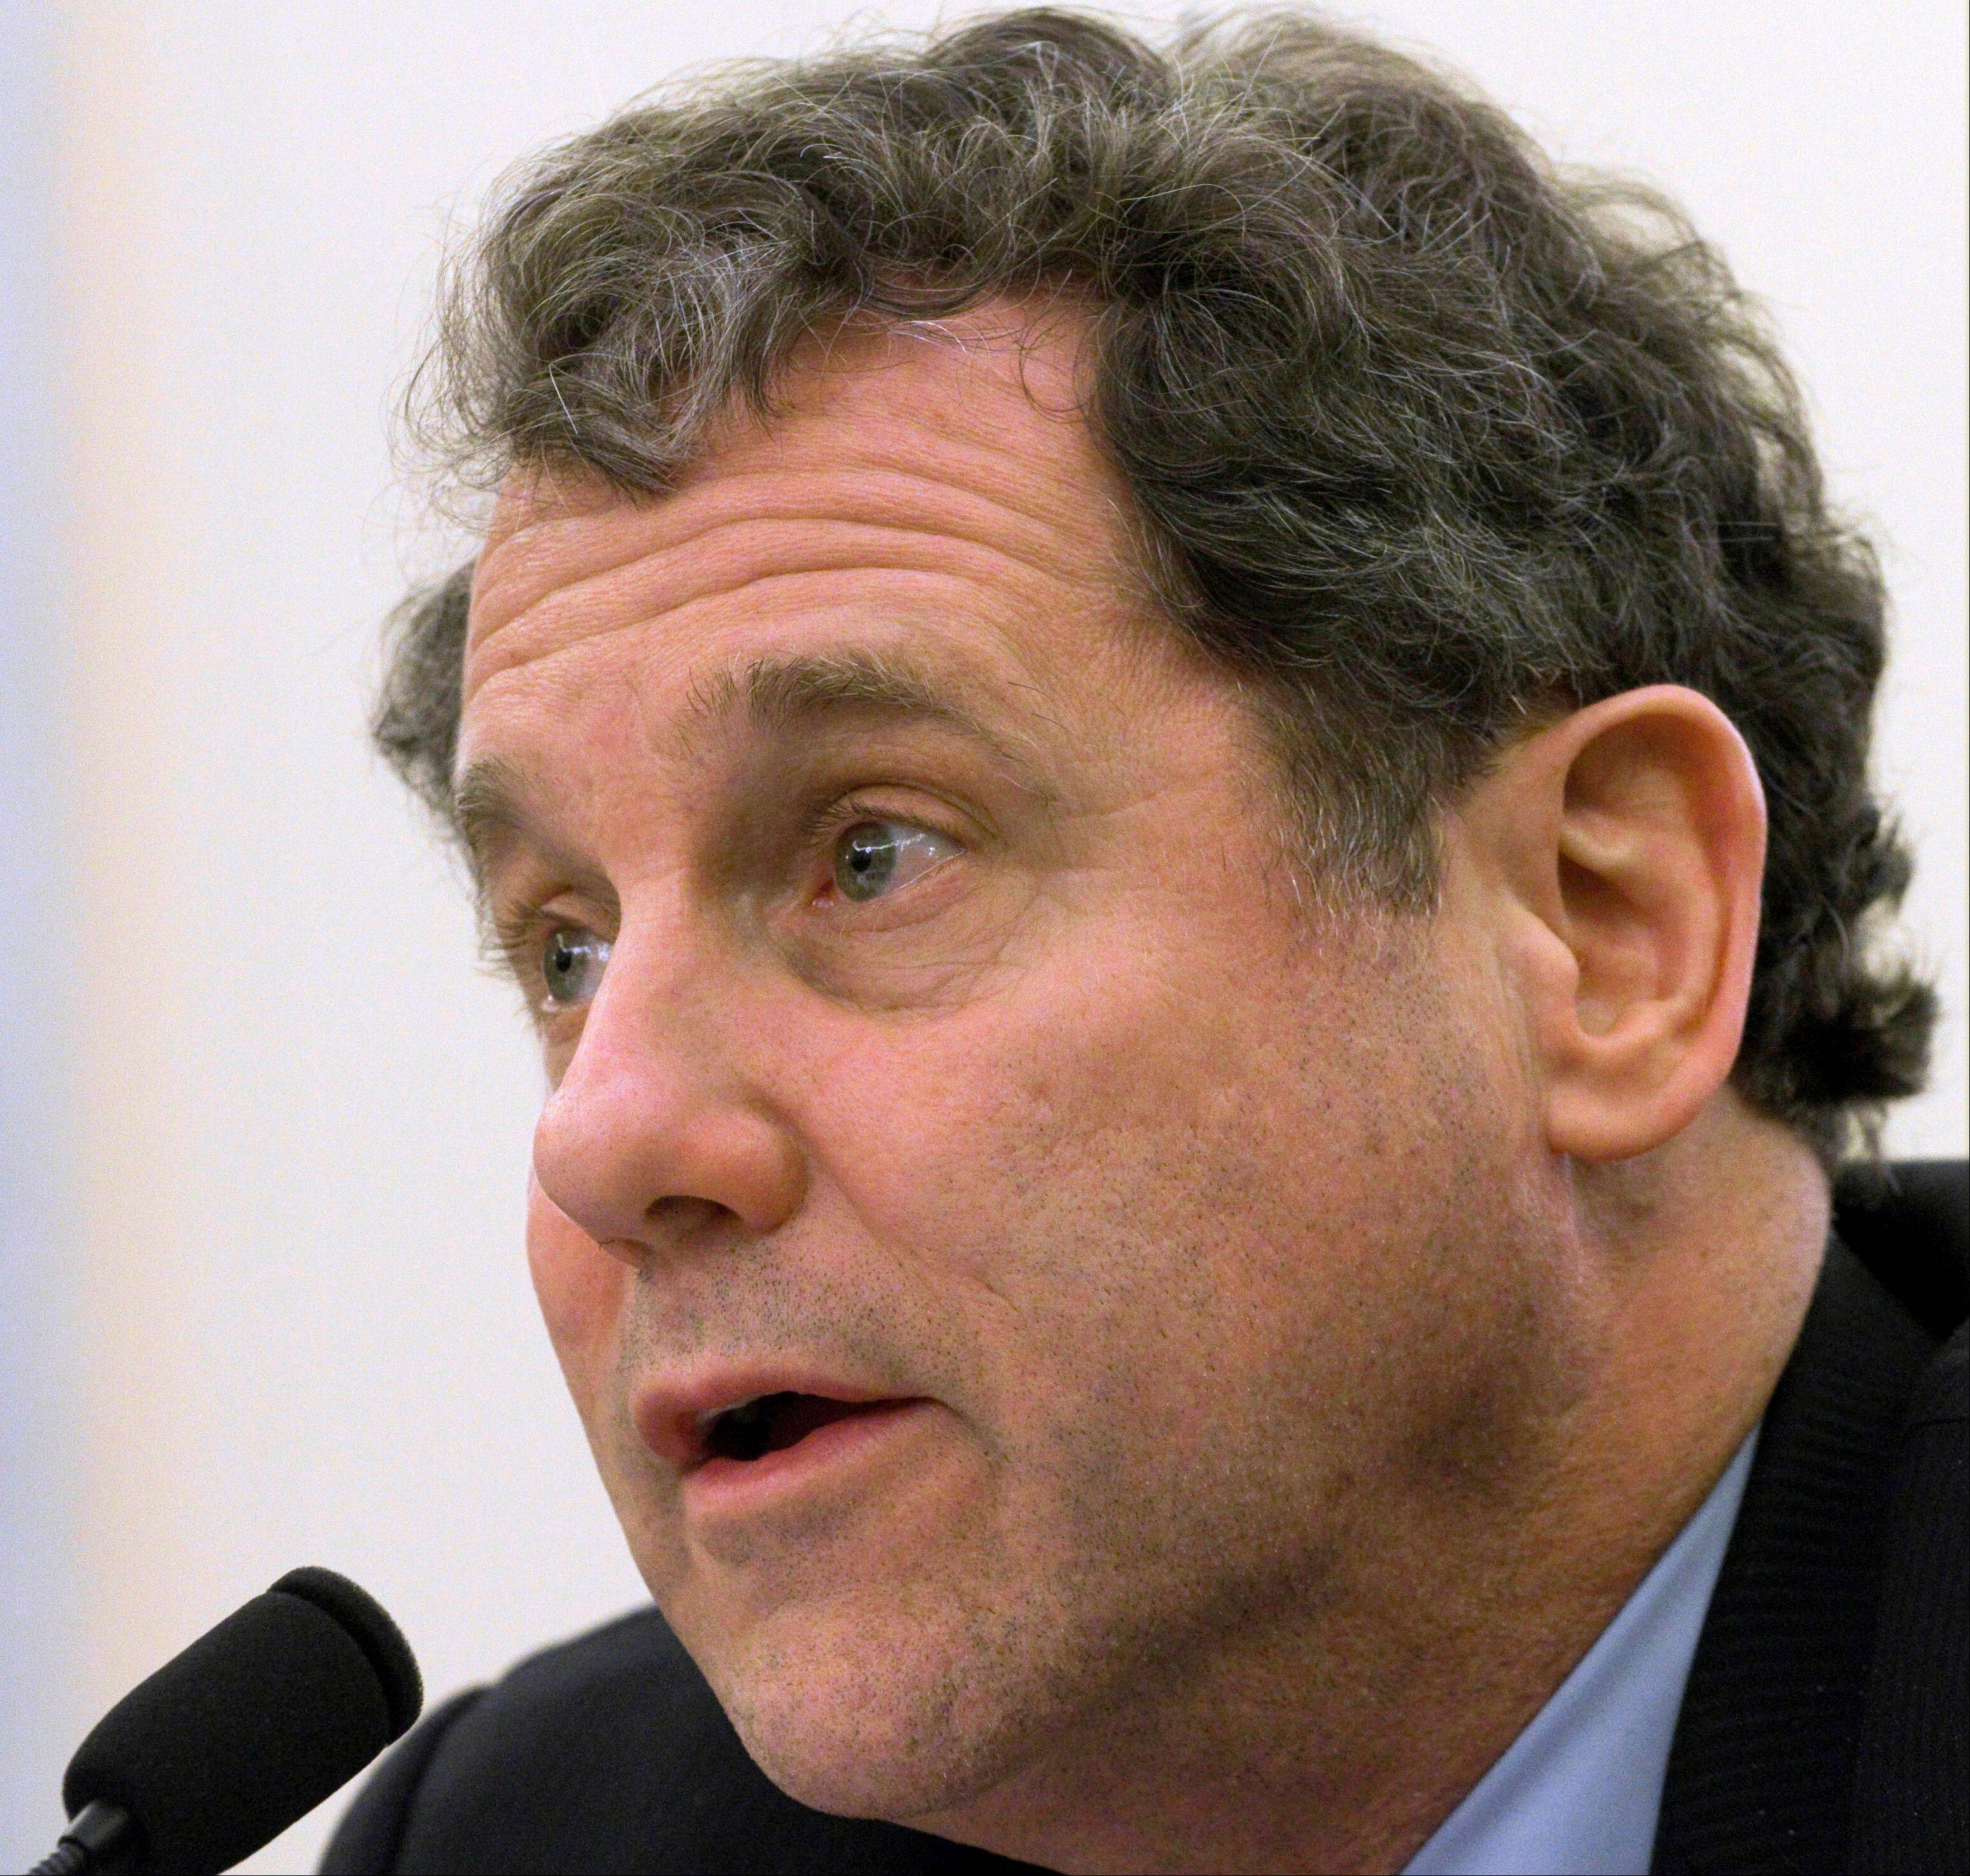 FILE - In this March 30, 2011 file photo, Sen. Sherrod Brown, D-Ohio testifies on Capitol Hill in Washington. Friends of coal are certain they know the enemy. They point to President Barack Obama and his Environmental Protection Agency, arguing that the administration�s new clean air rules dealt a devastating blow to a multibillion-dollar industry that has been the lifeblood of Appalachia for generations. The standards imposed earlier this year tightened limits on existing coal powered-plant emissions; agency guidelines on restricting greenhouse gases could affect new plants as early as 2013.